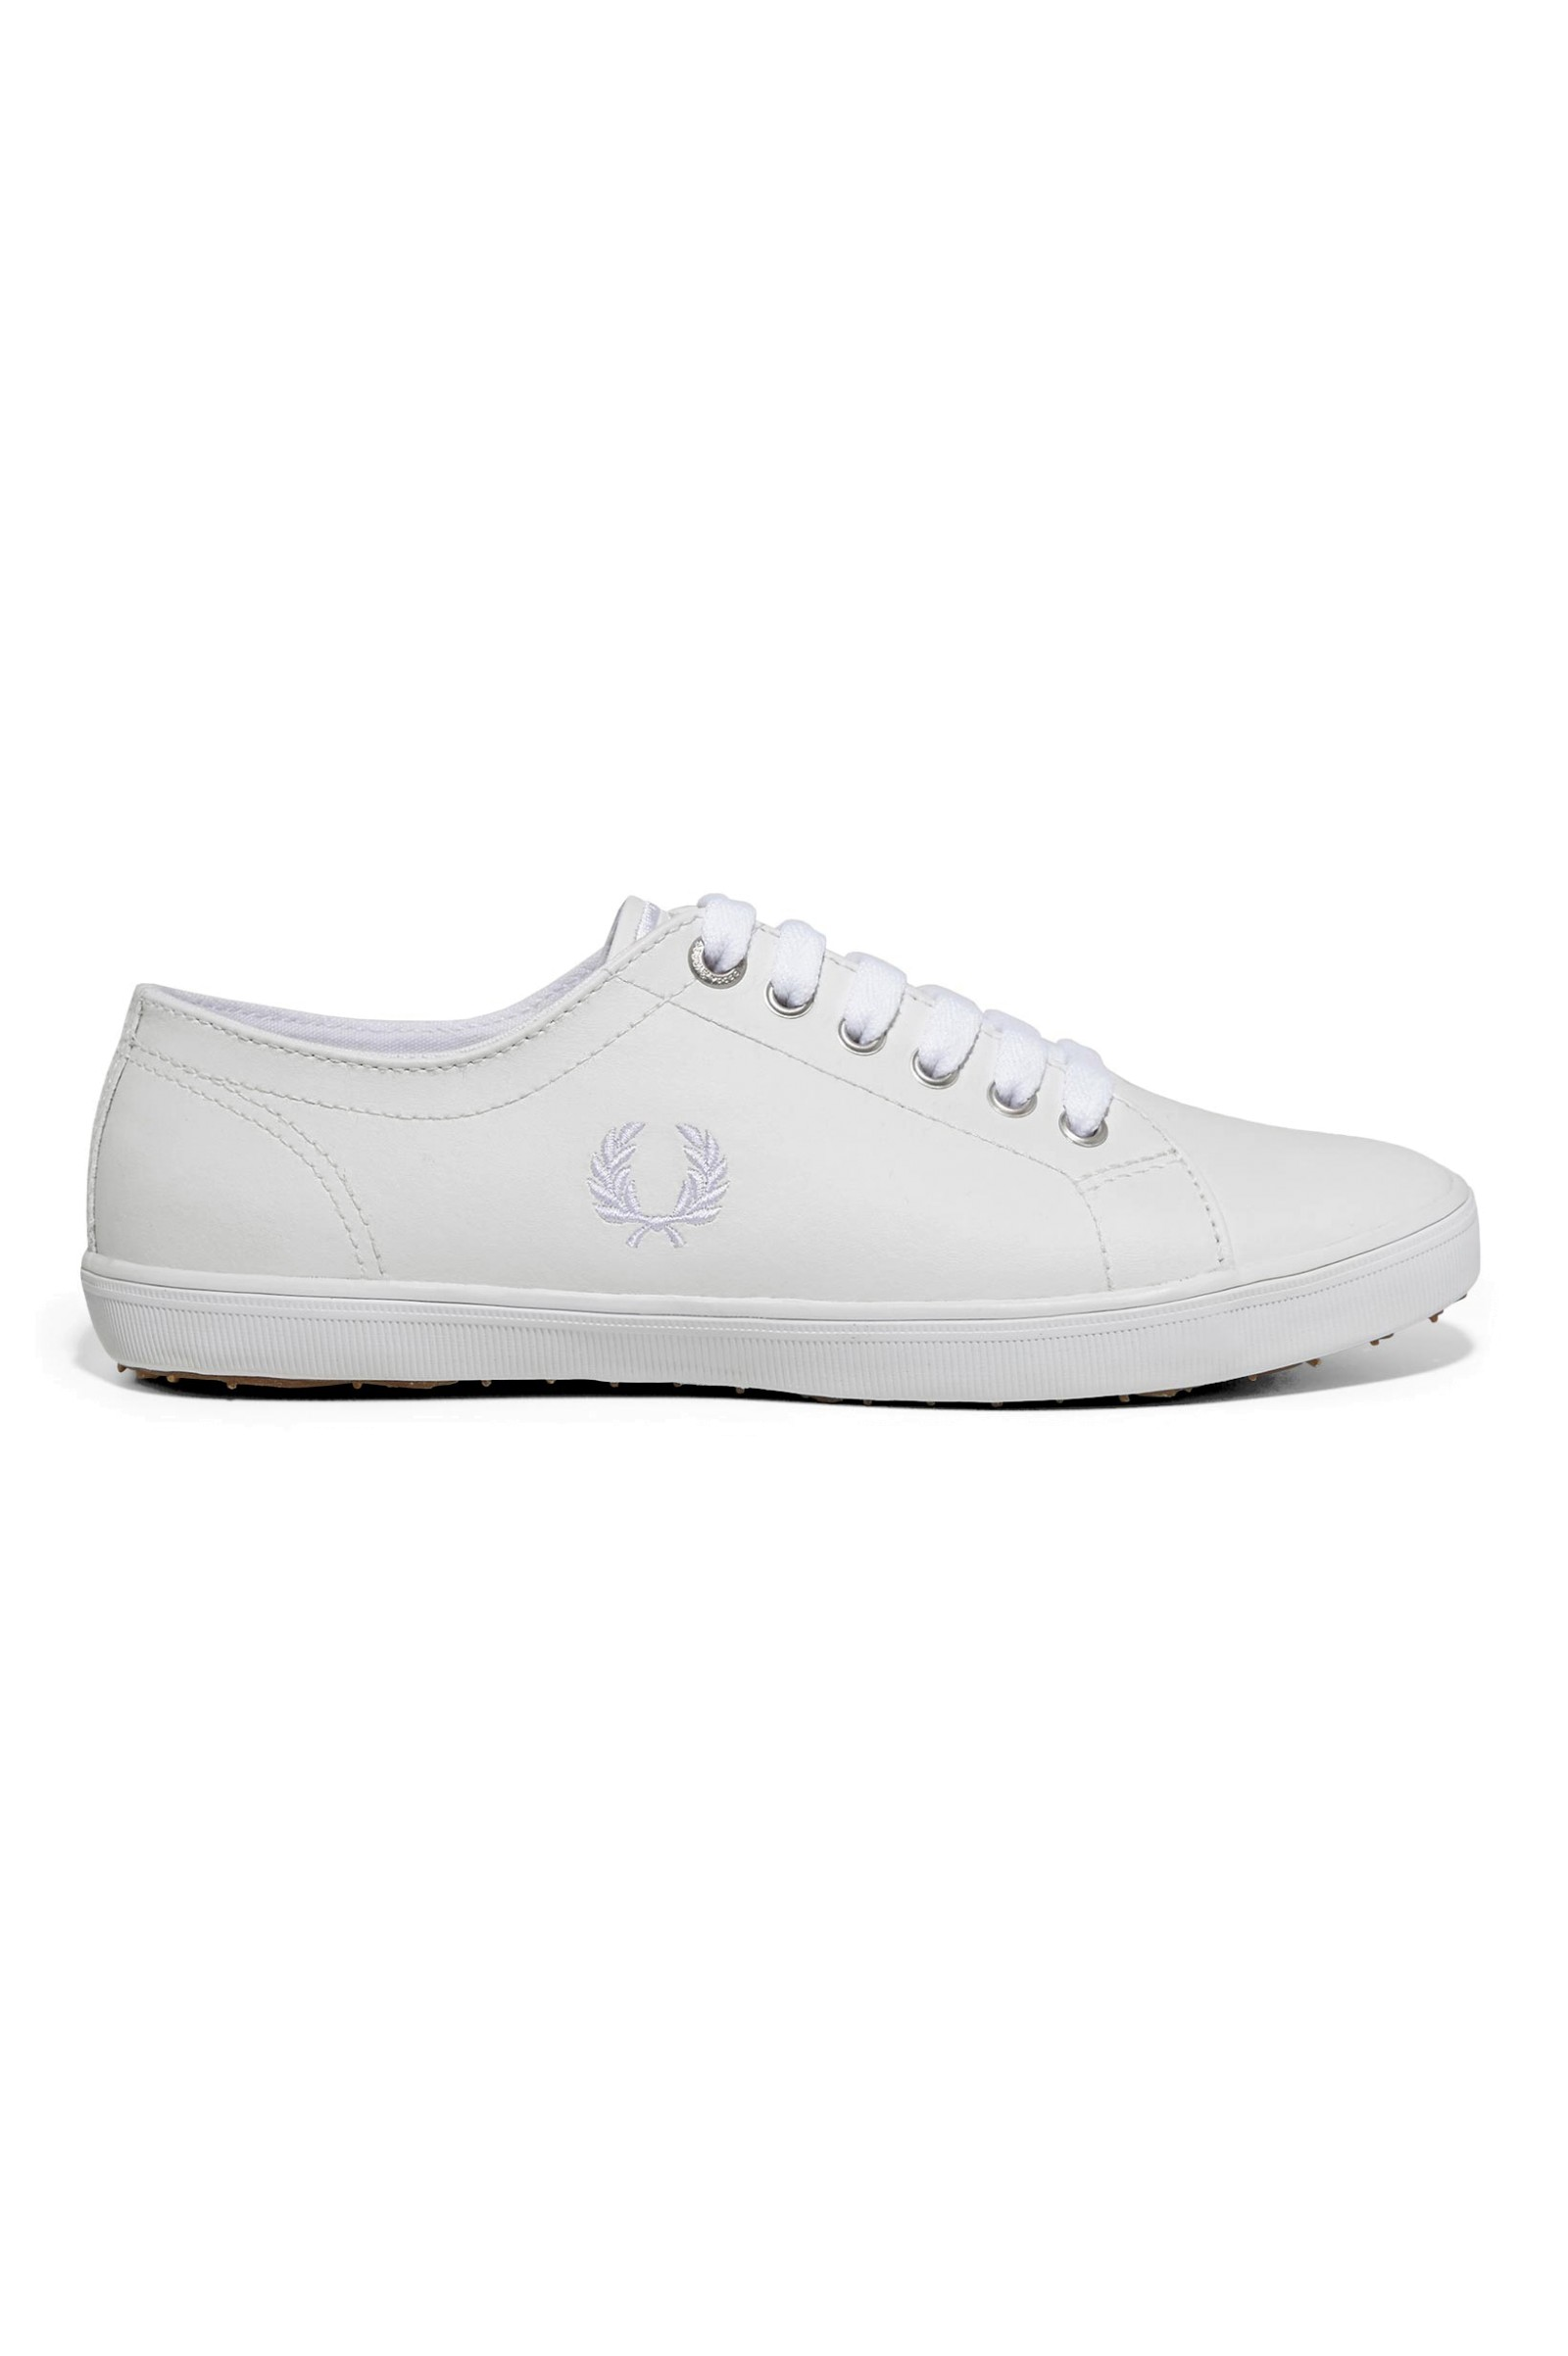 Kingston Leather Plimsolls In White - 200 Fred Perry NYdMii4E